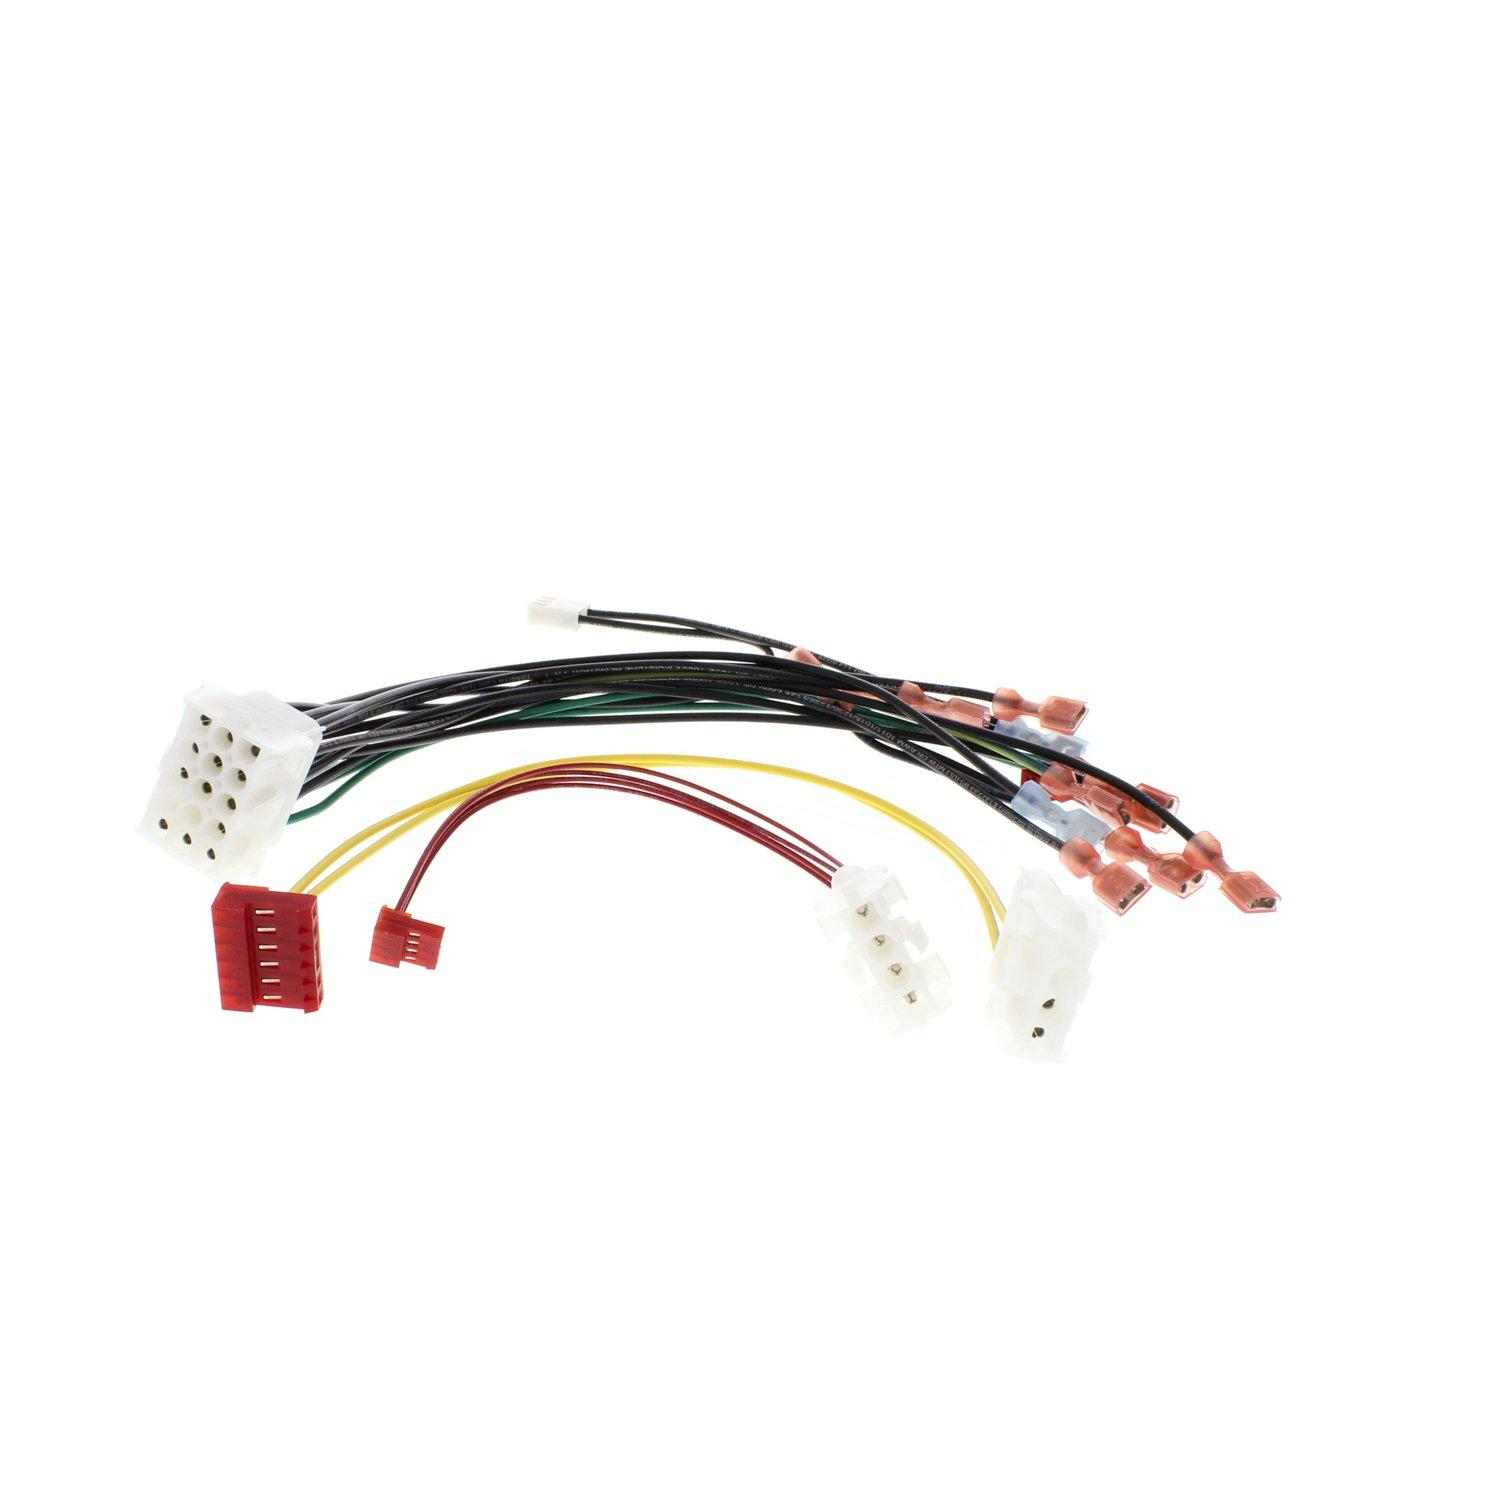 List Of Wiring Harness Companies In World : Wiring harness manufacturers list trailer